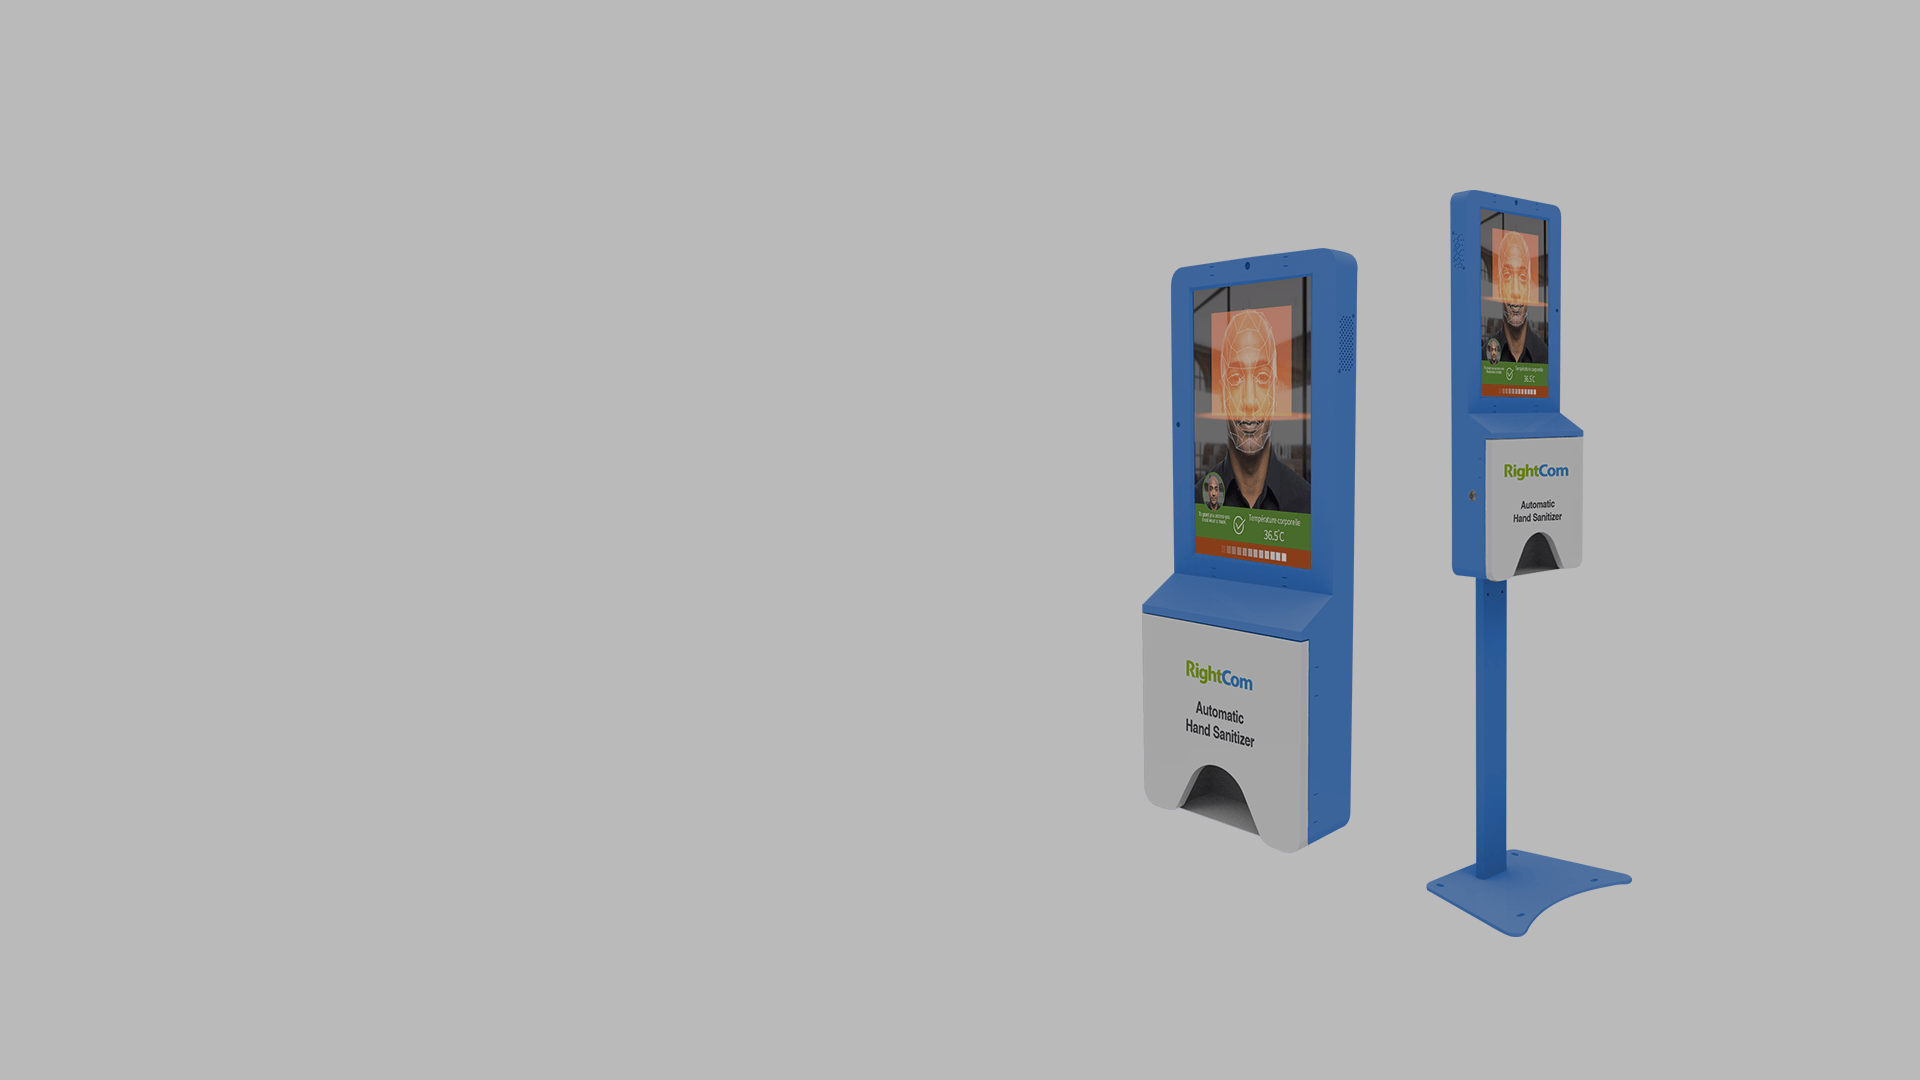 New Multifunction Kiosk With Automatic Hand Sanitizer Dispenser Rightcom